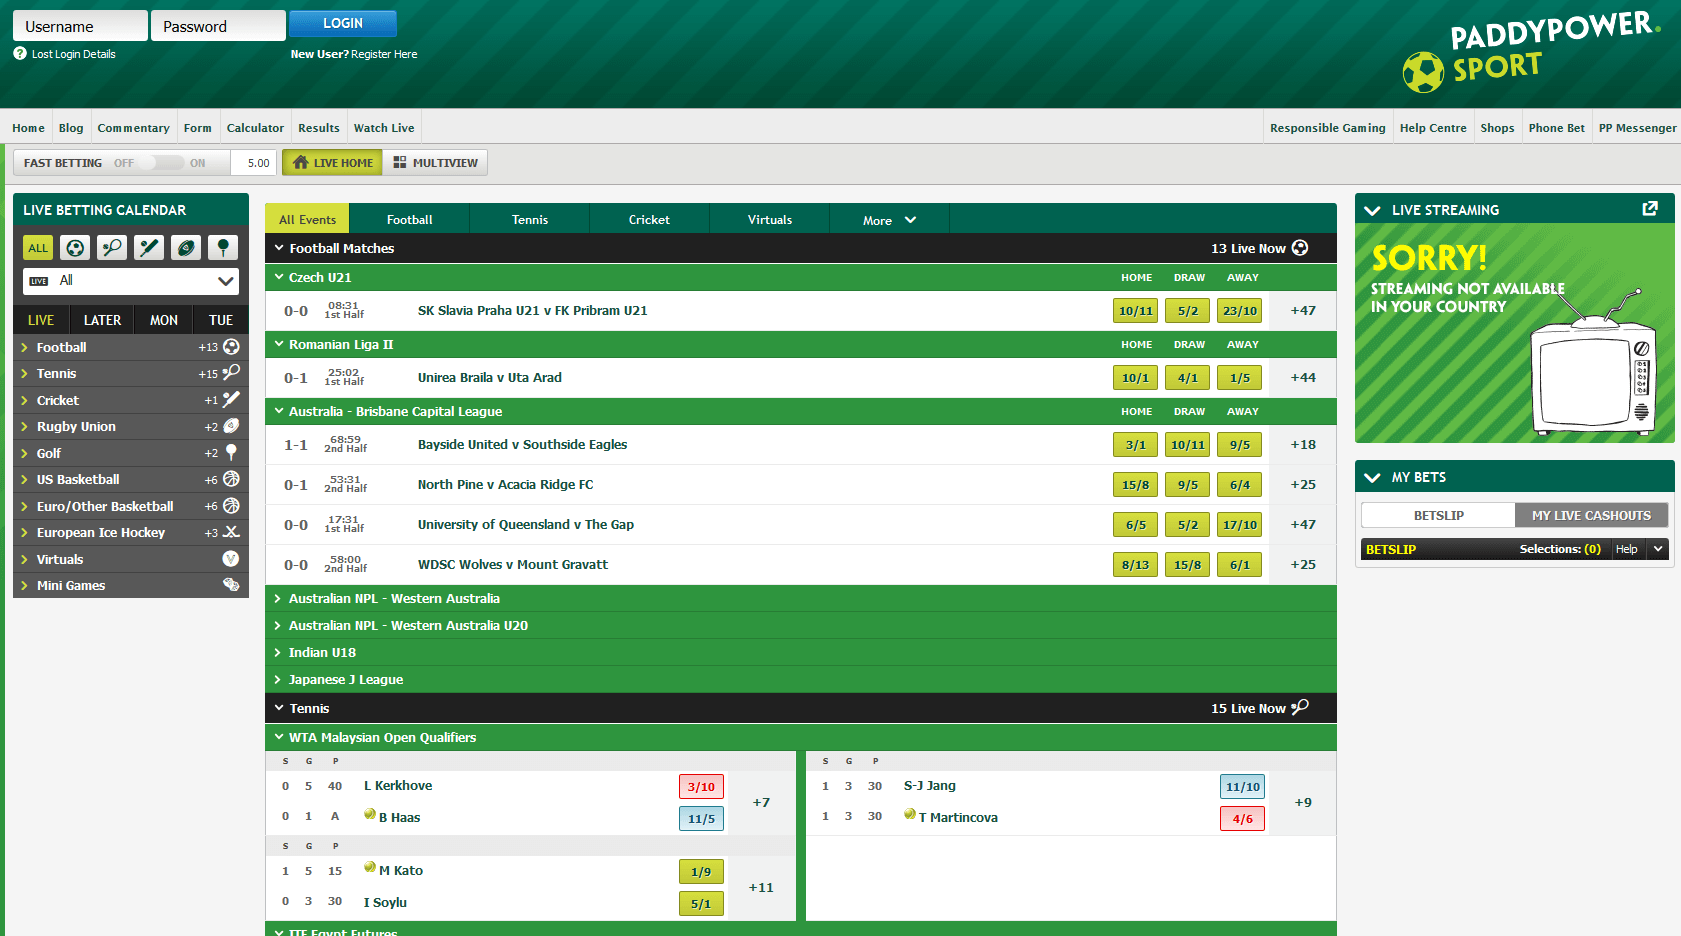 Paddy Power Tennis: Australian Open